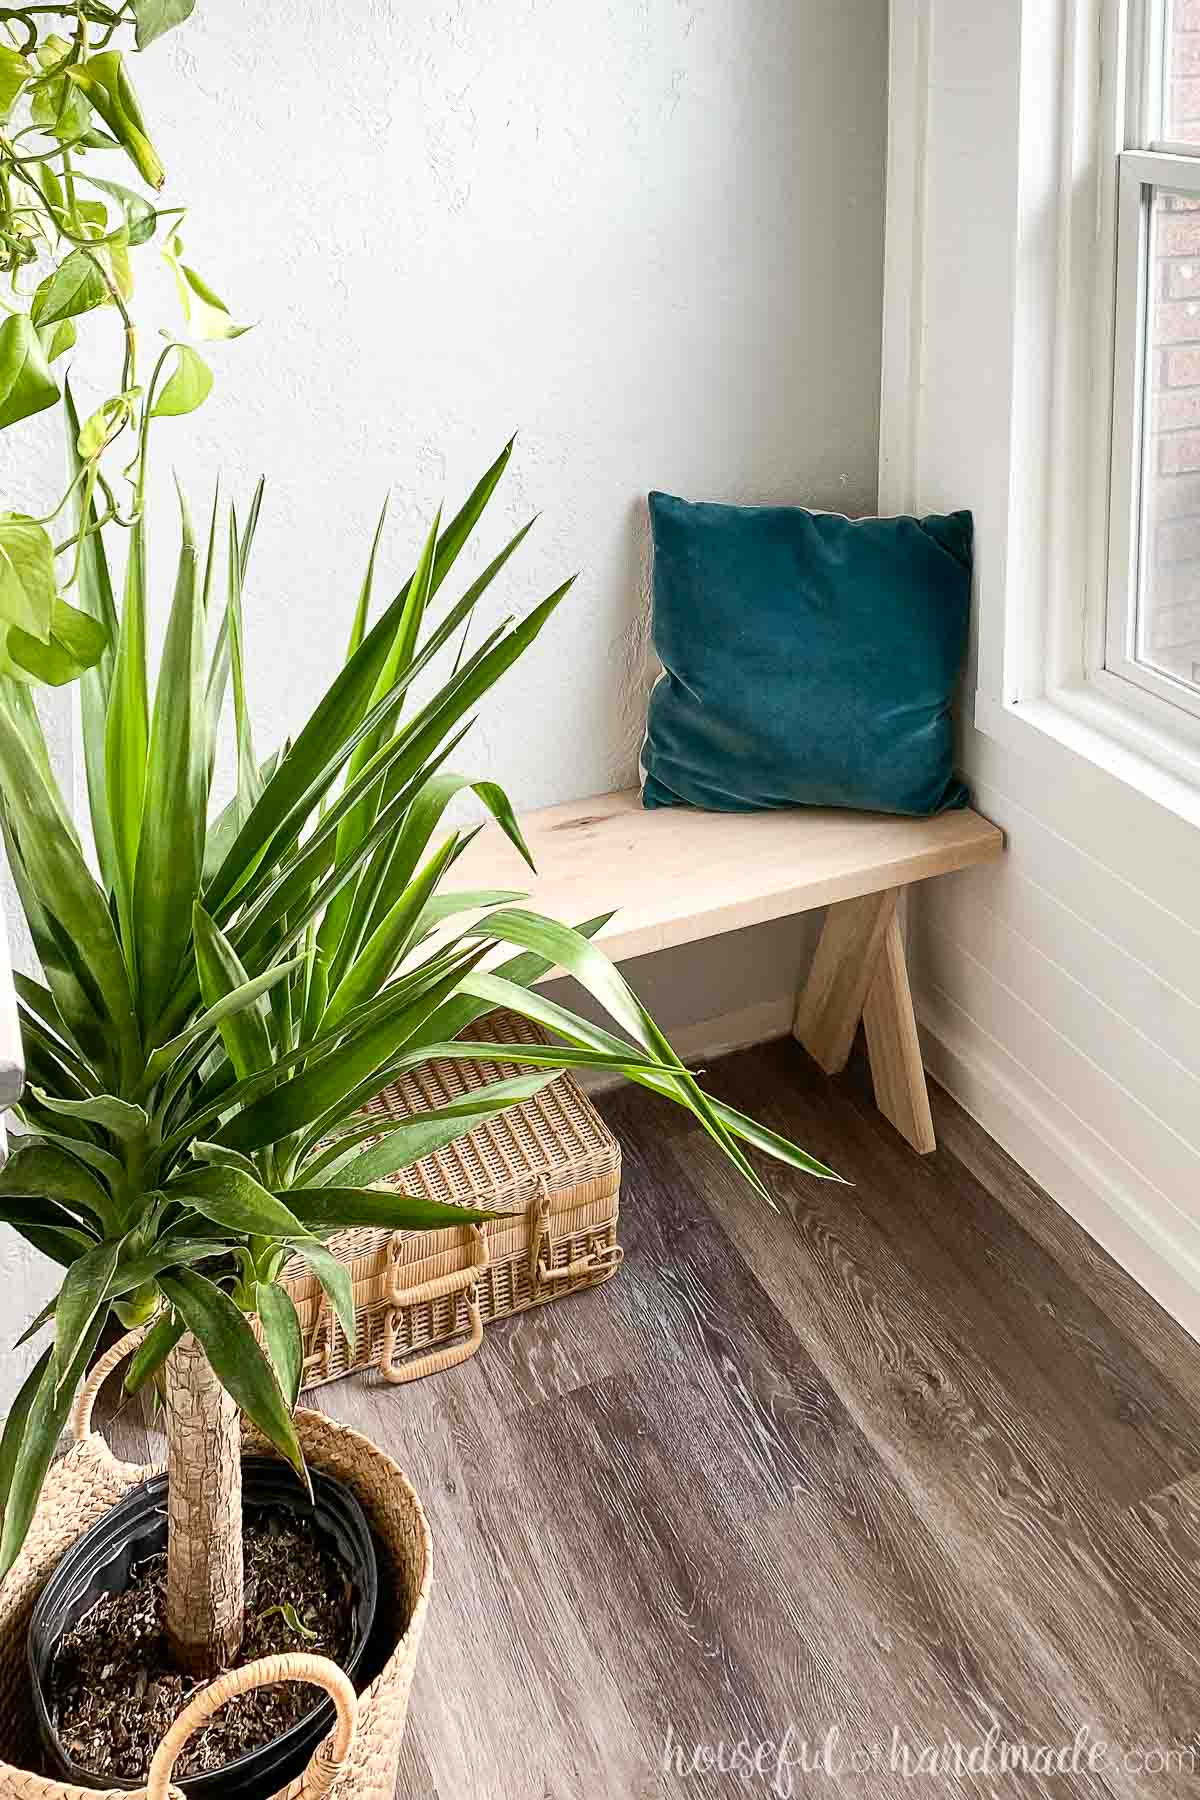 Tropical potted plant in the foreground with the DIY x-leg bench in the background with a velvet pillow on top.